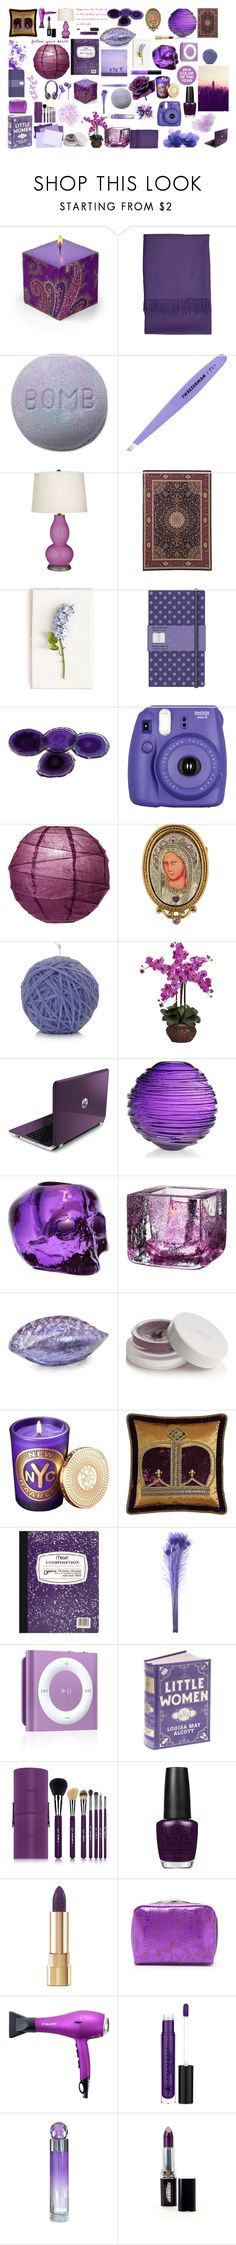 """""""Purple Fillers"""" by juliehalloran ❤ liked on Polyvore featuring Etro, Ted Baker, Tweezerman, Sphinx by Oriental Weavers, Tommy Mitchell, Moleskine, Public Library, Anna New York, Fujifilm and Missoni"""